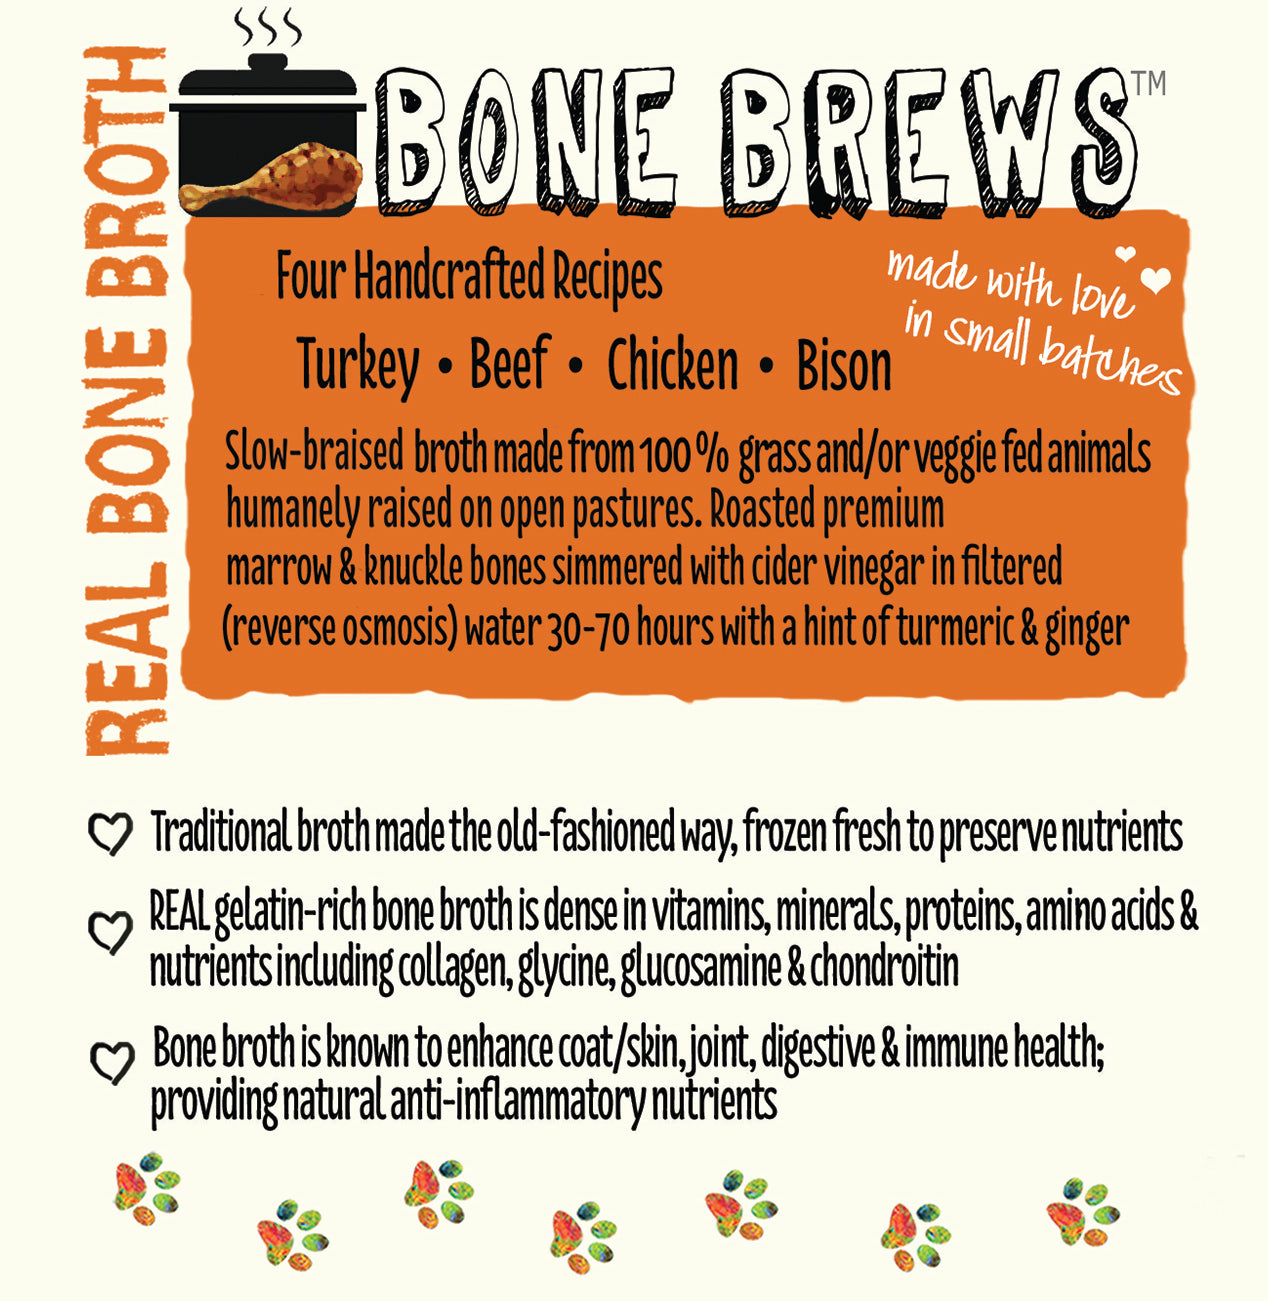 Nuggets Healthy Eats - Bone Brews Label